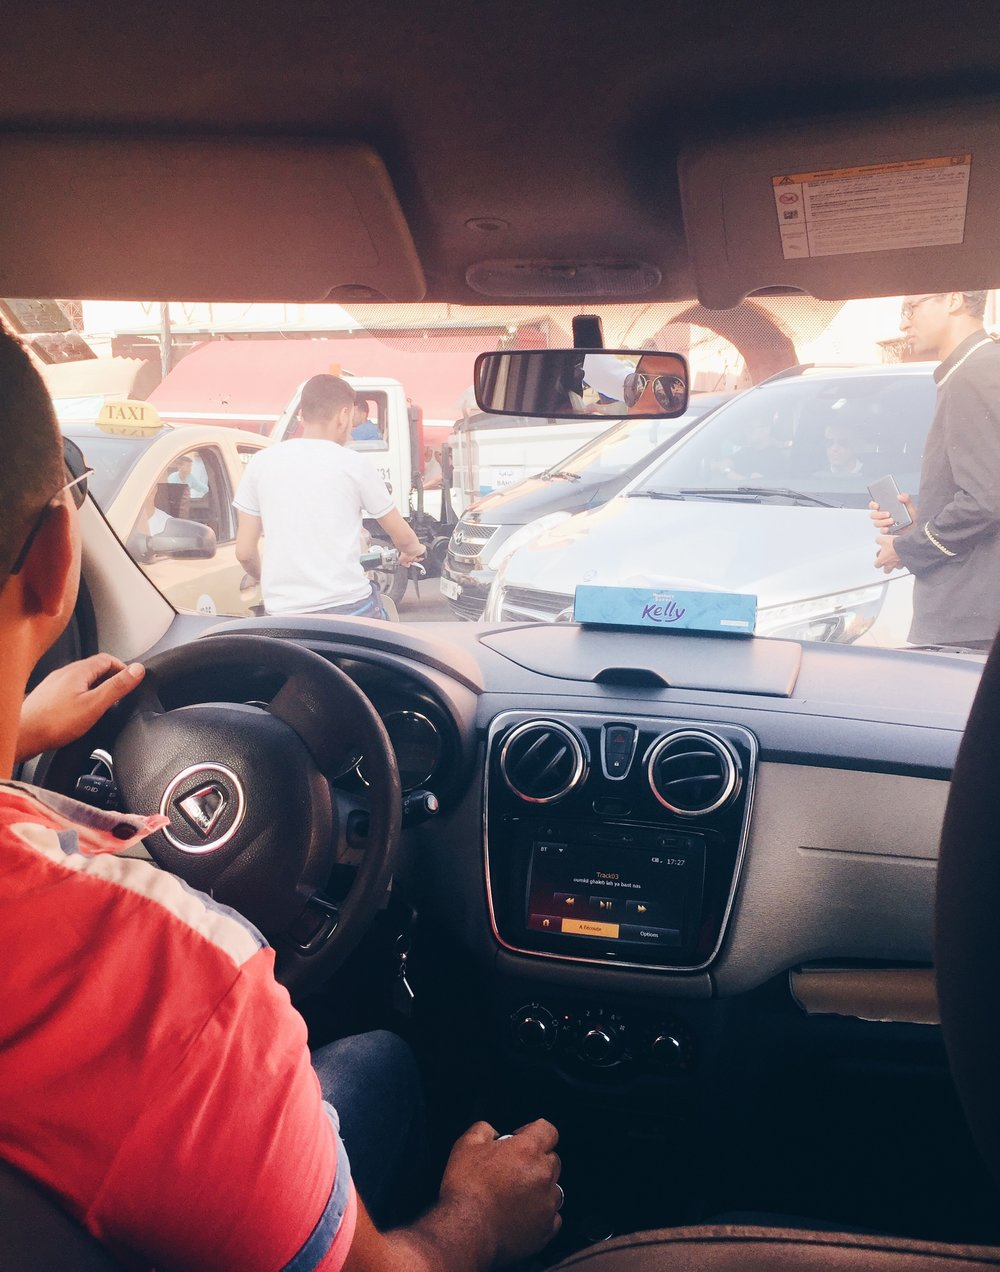 Driving through the busy streets of Marrakech and listening to Berber music felt like a dream (partially because I was exhausted from the commute :-))